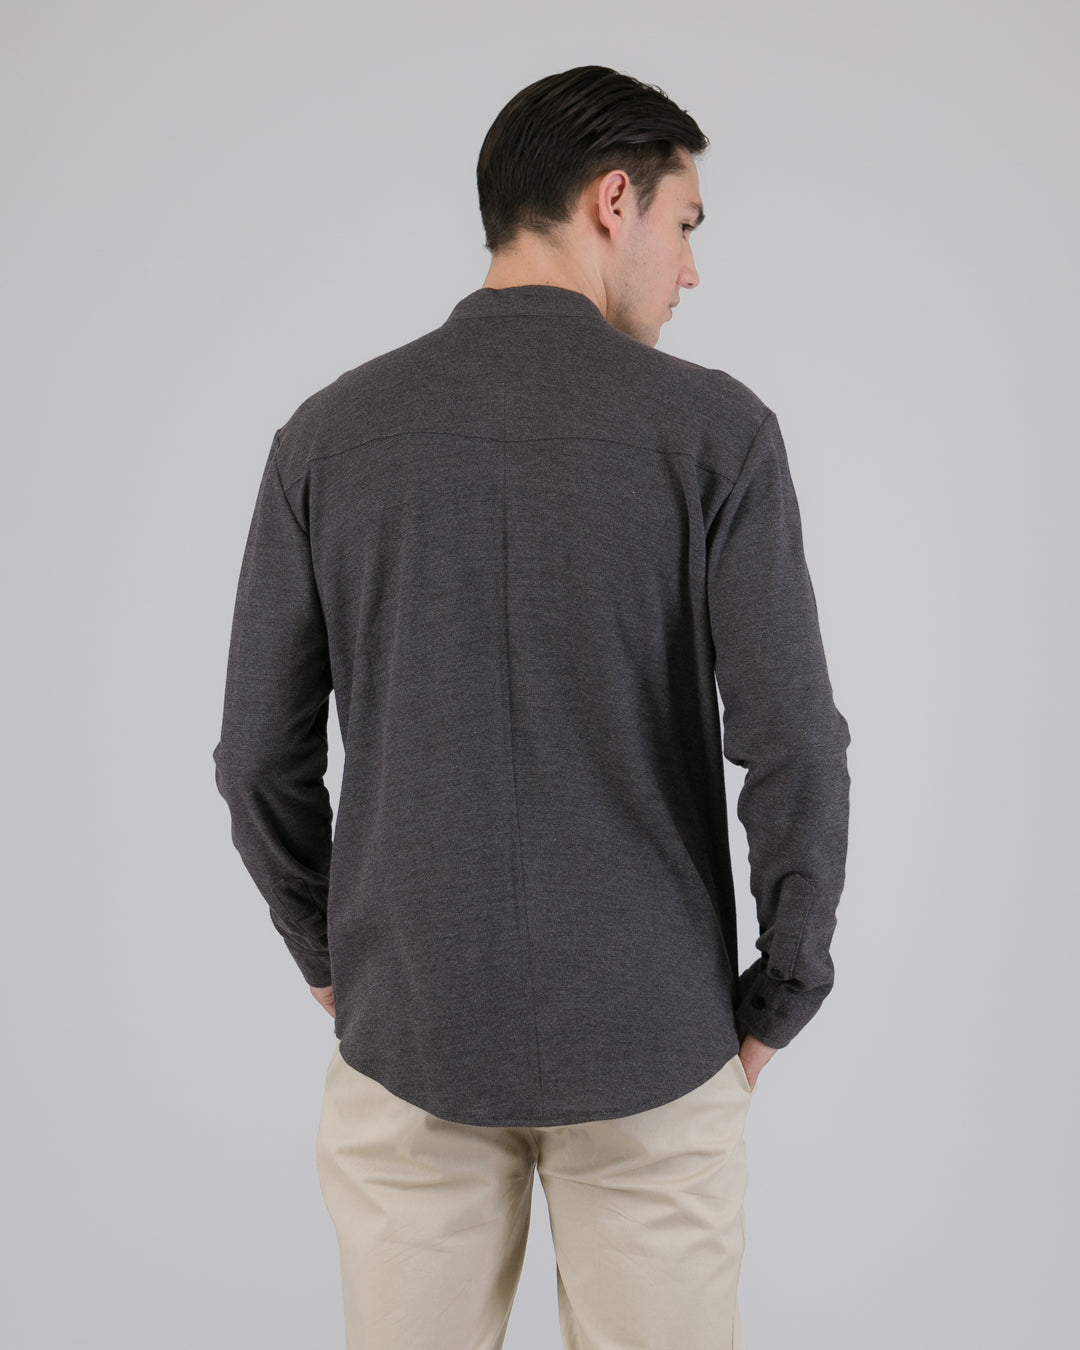 Ciangi V2 LS Dark Gray